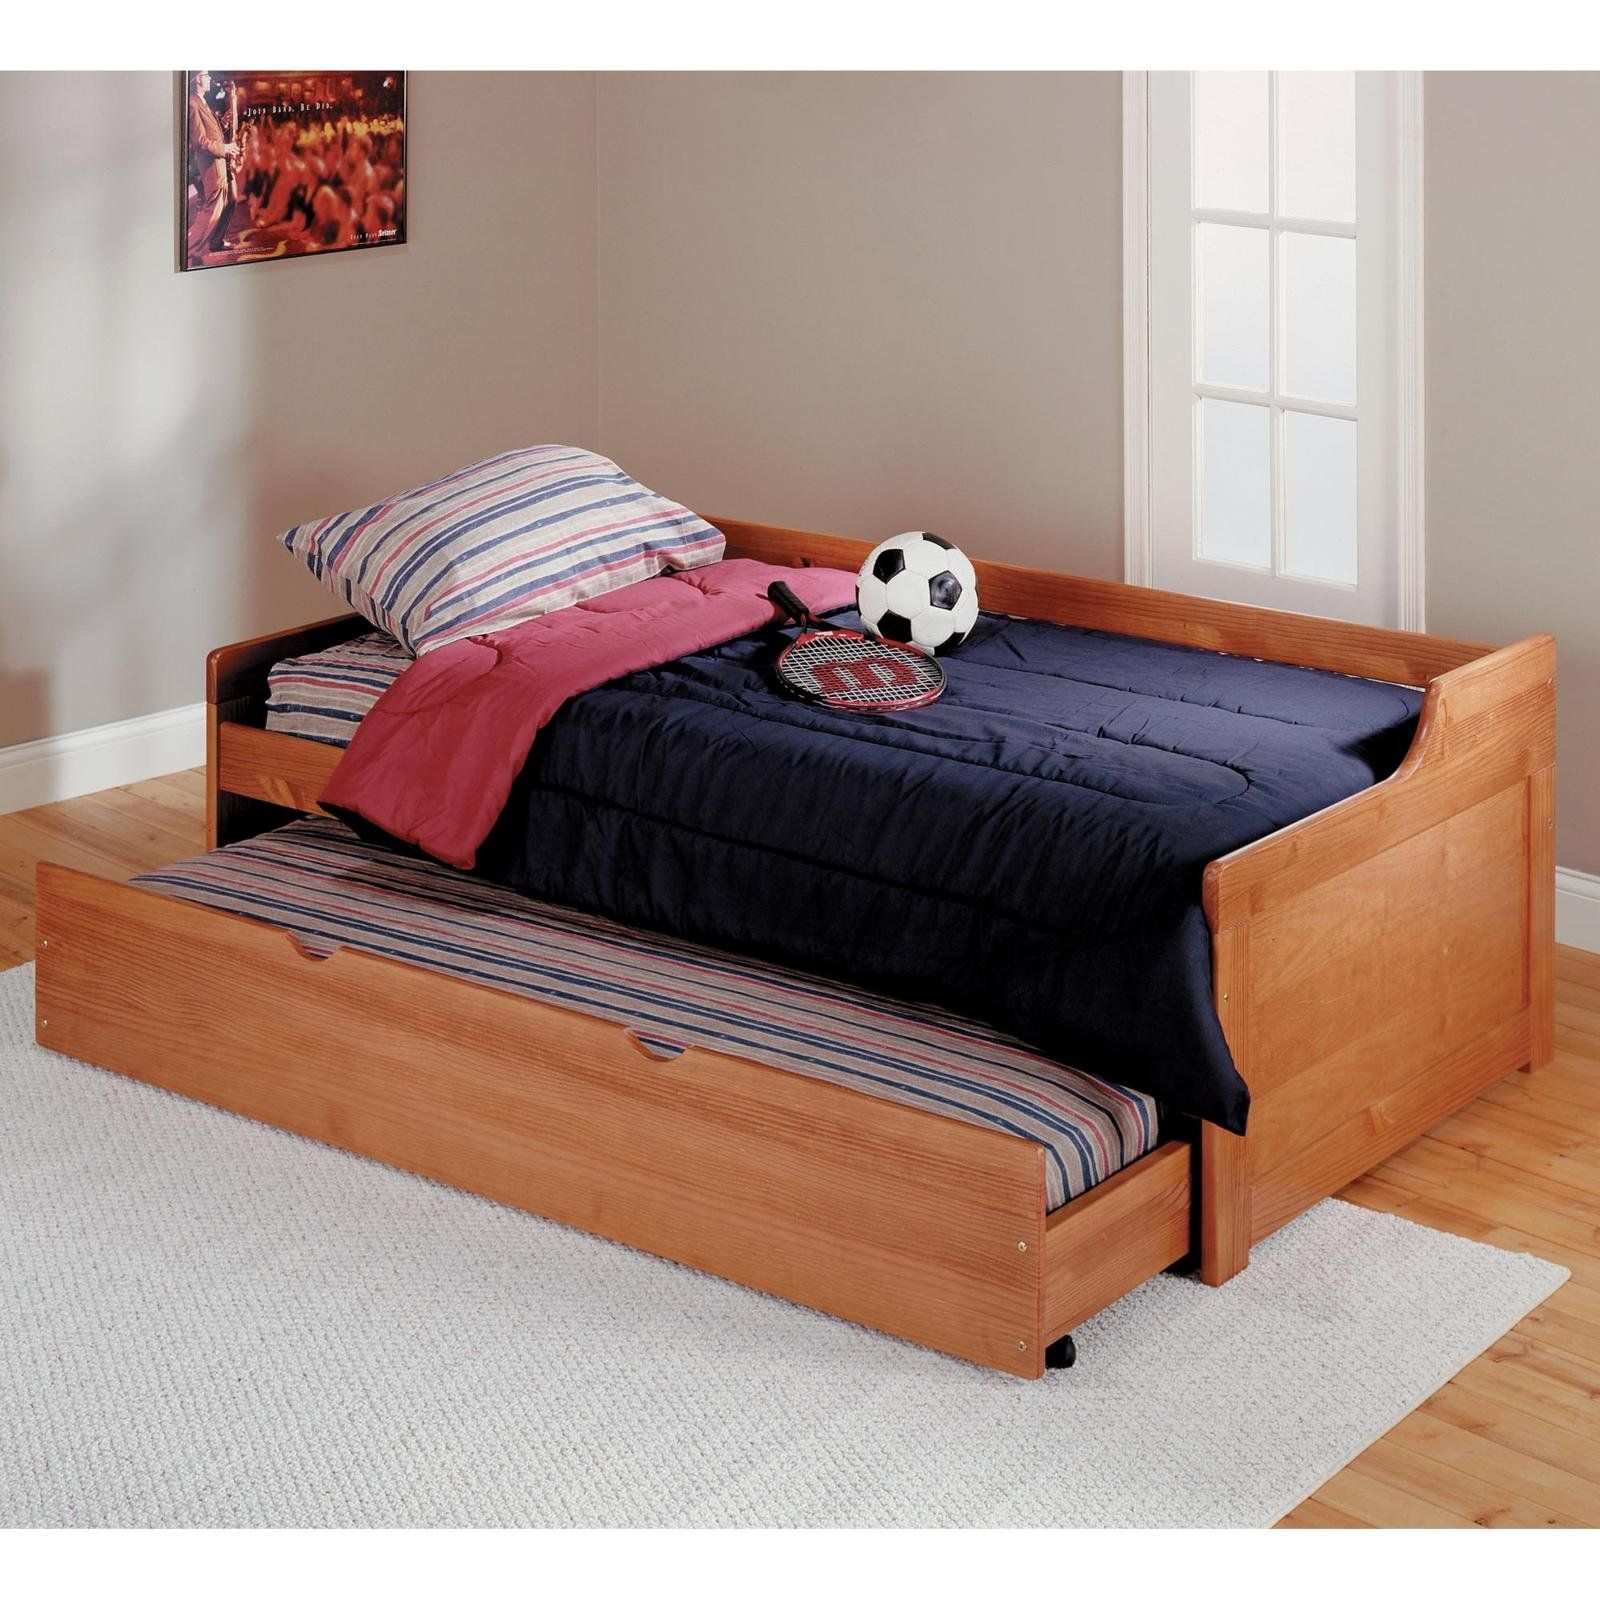 two day beds with trundles against the low wall serve as seating  - ethan trundle daybed  kids trundle beds at hayneedle